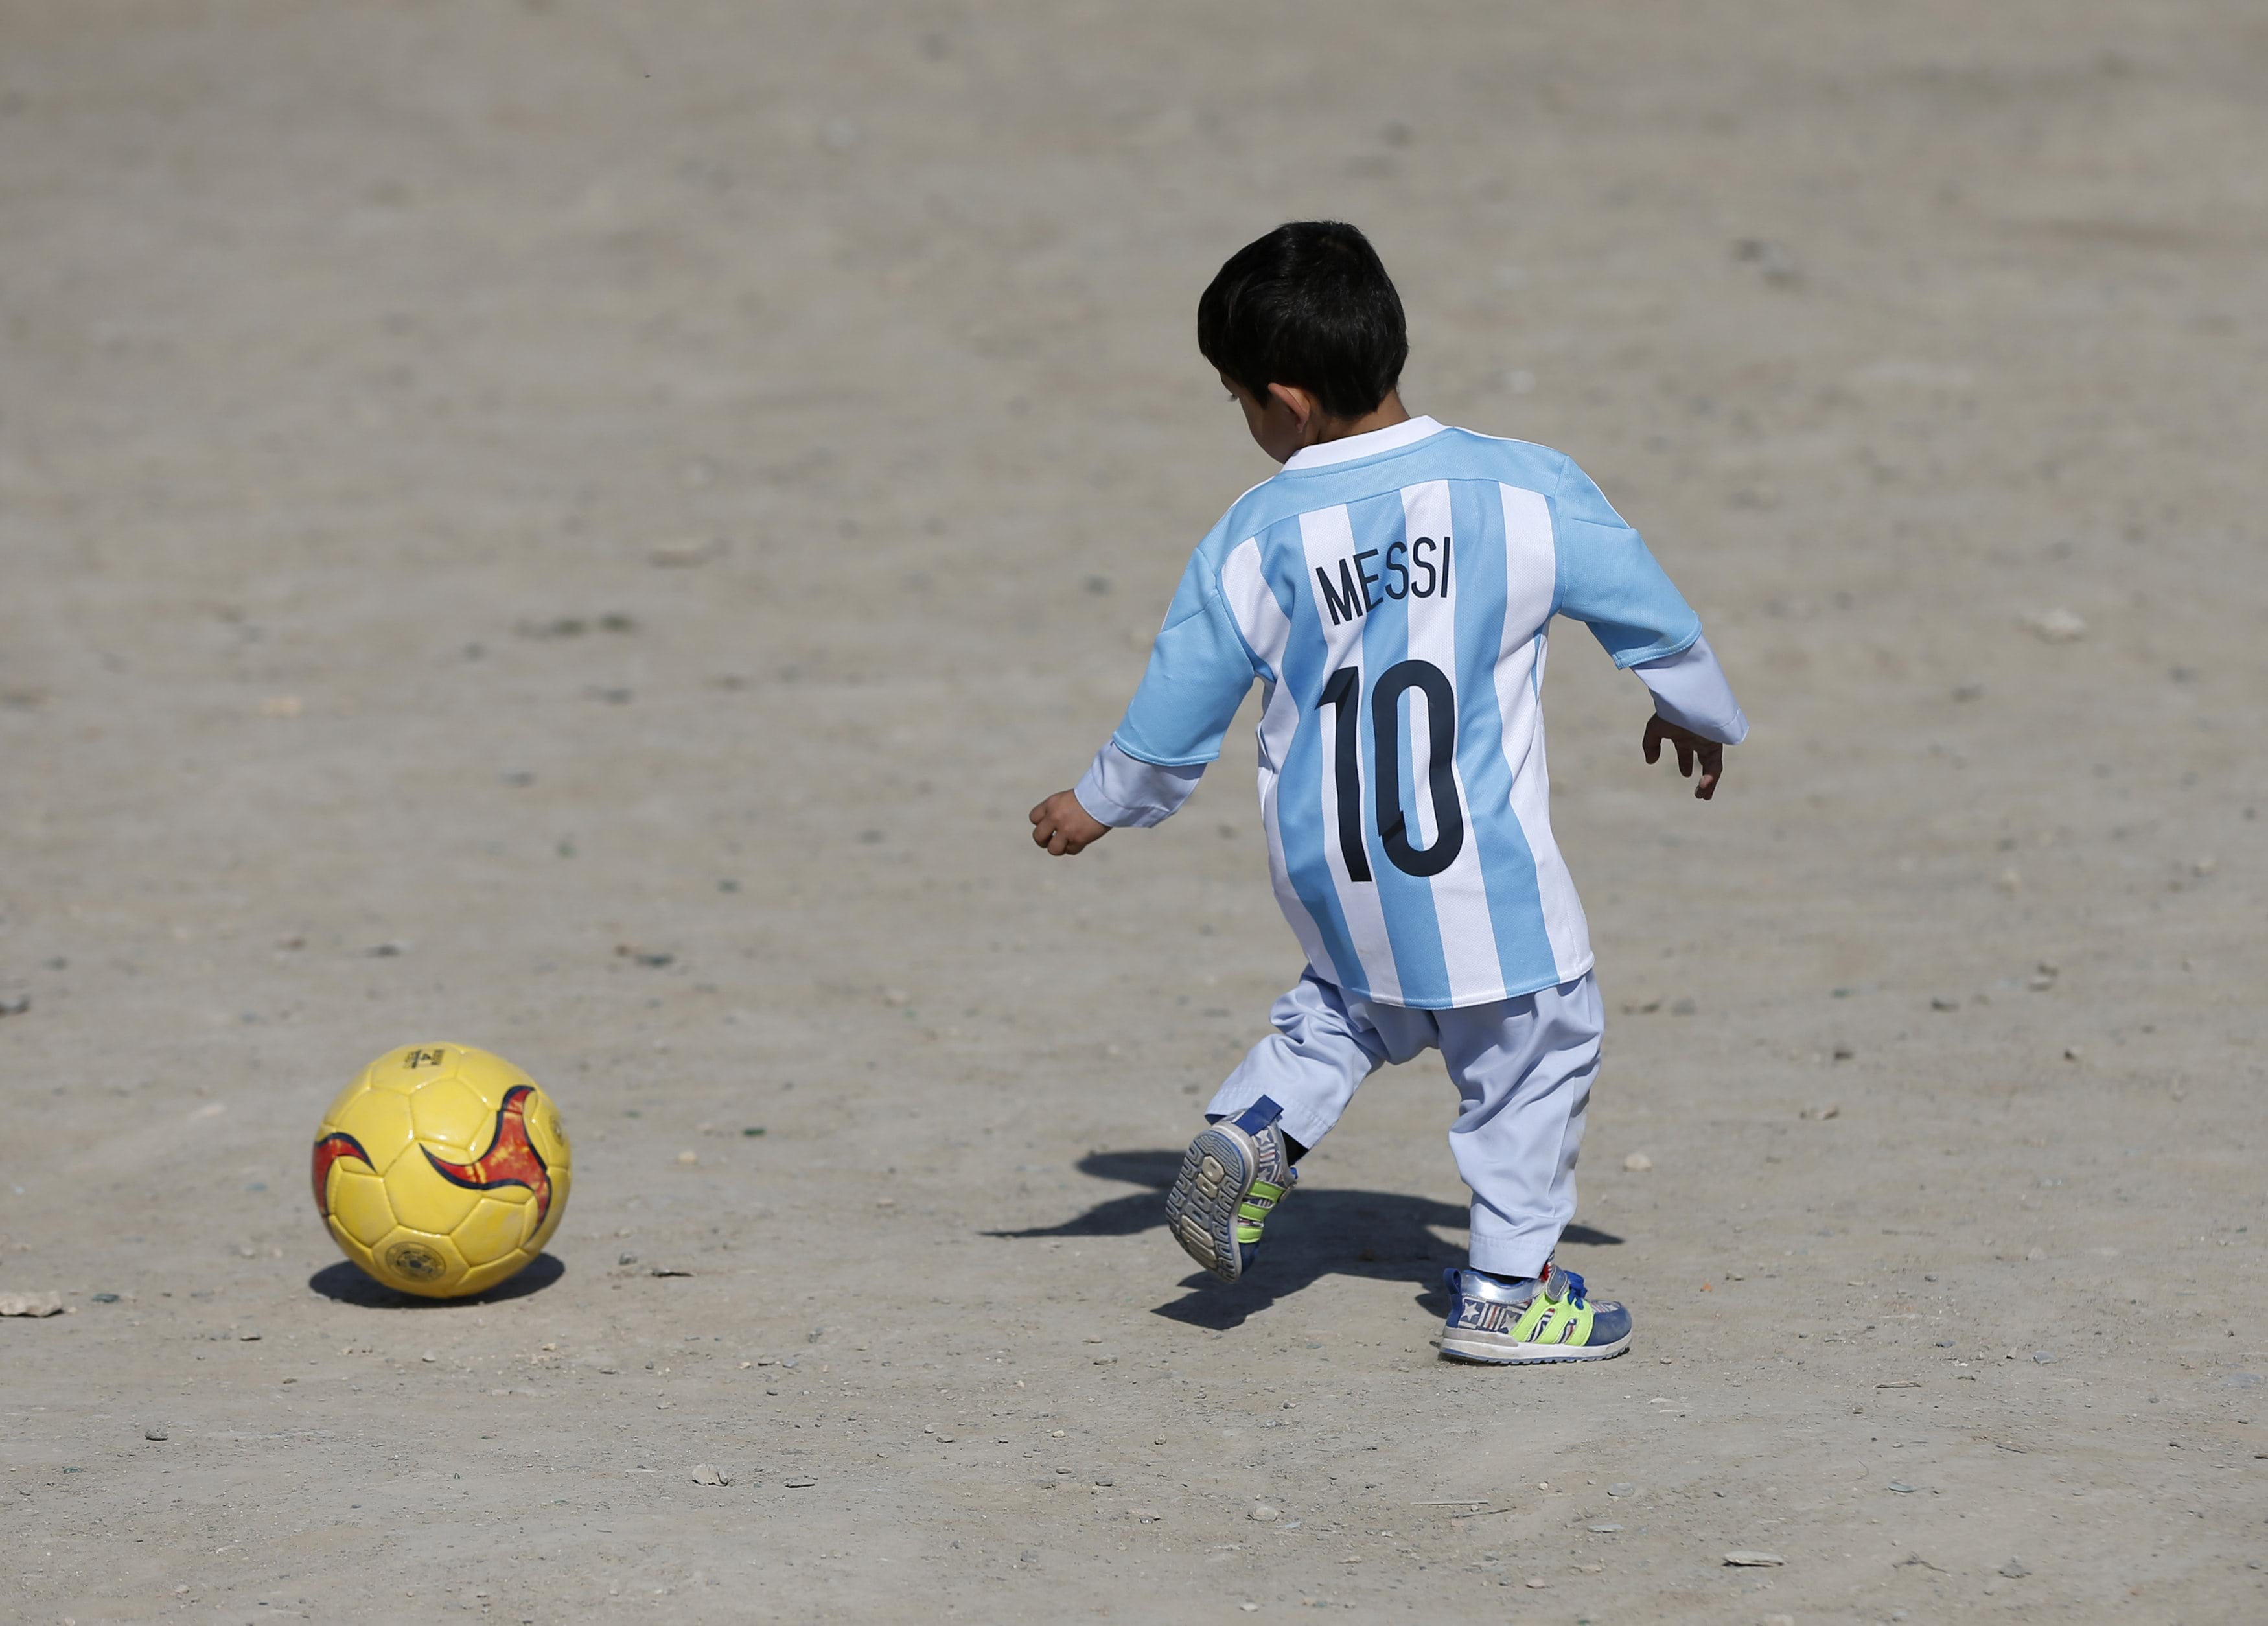 Five year-old Ahmadi, an Afghan Messi fan, wears a shirt signed by Barcelona star Messi, as he plays football at the open area in Kabul